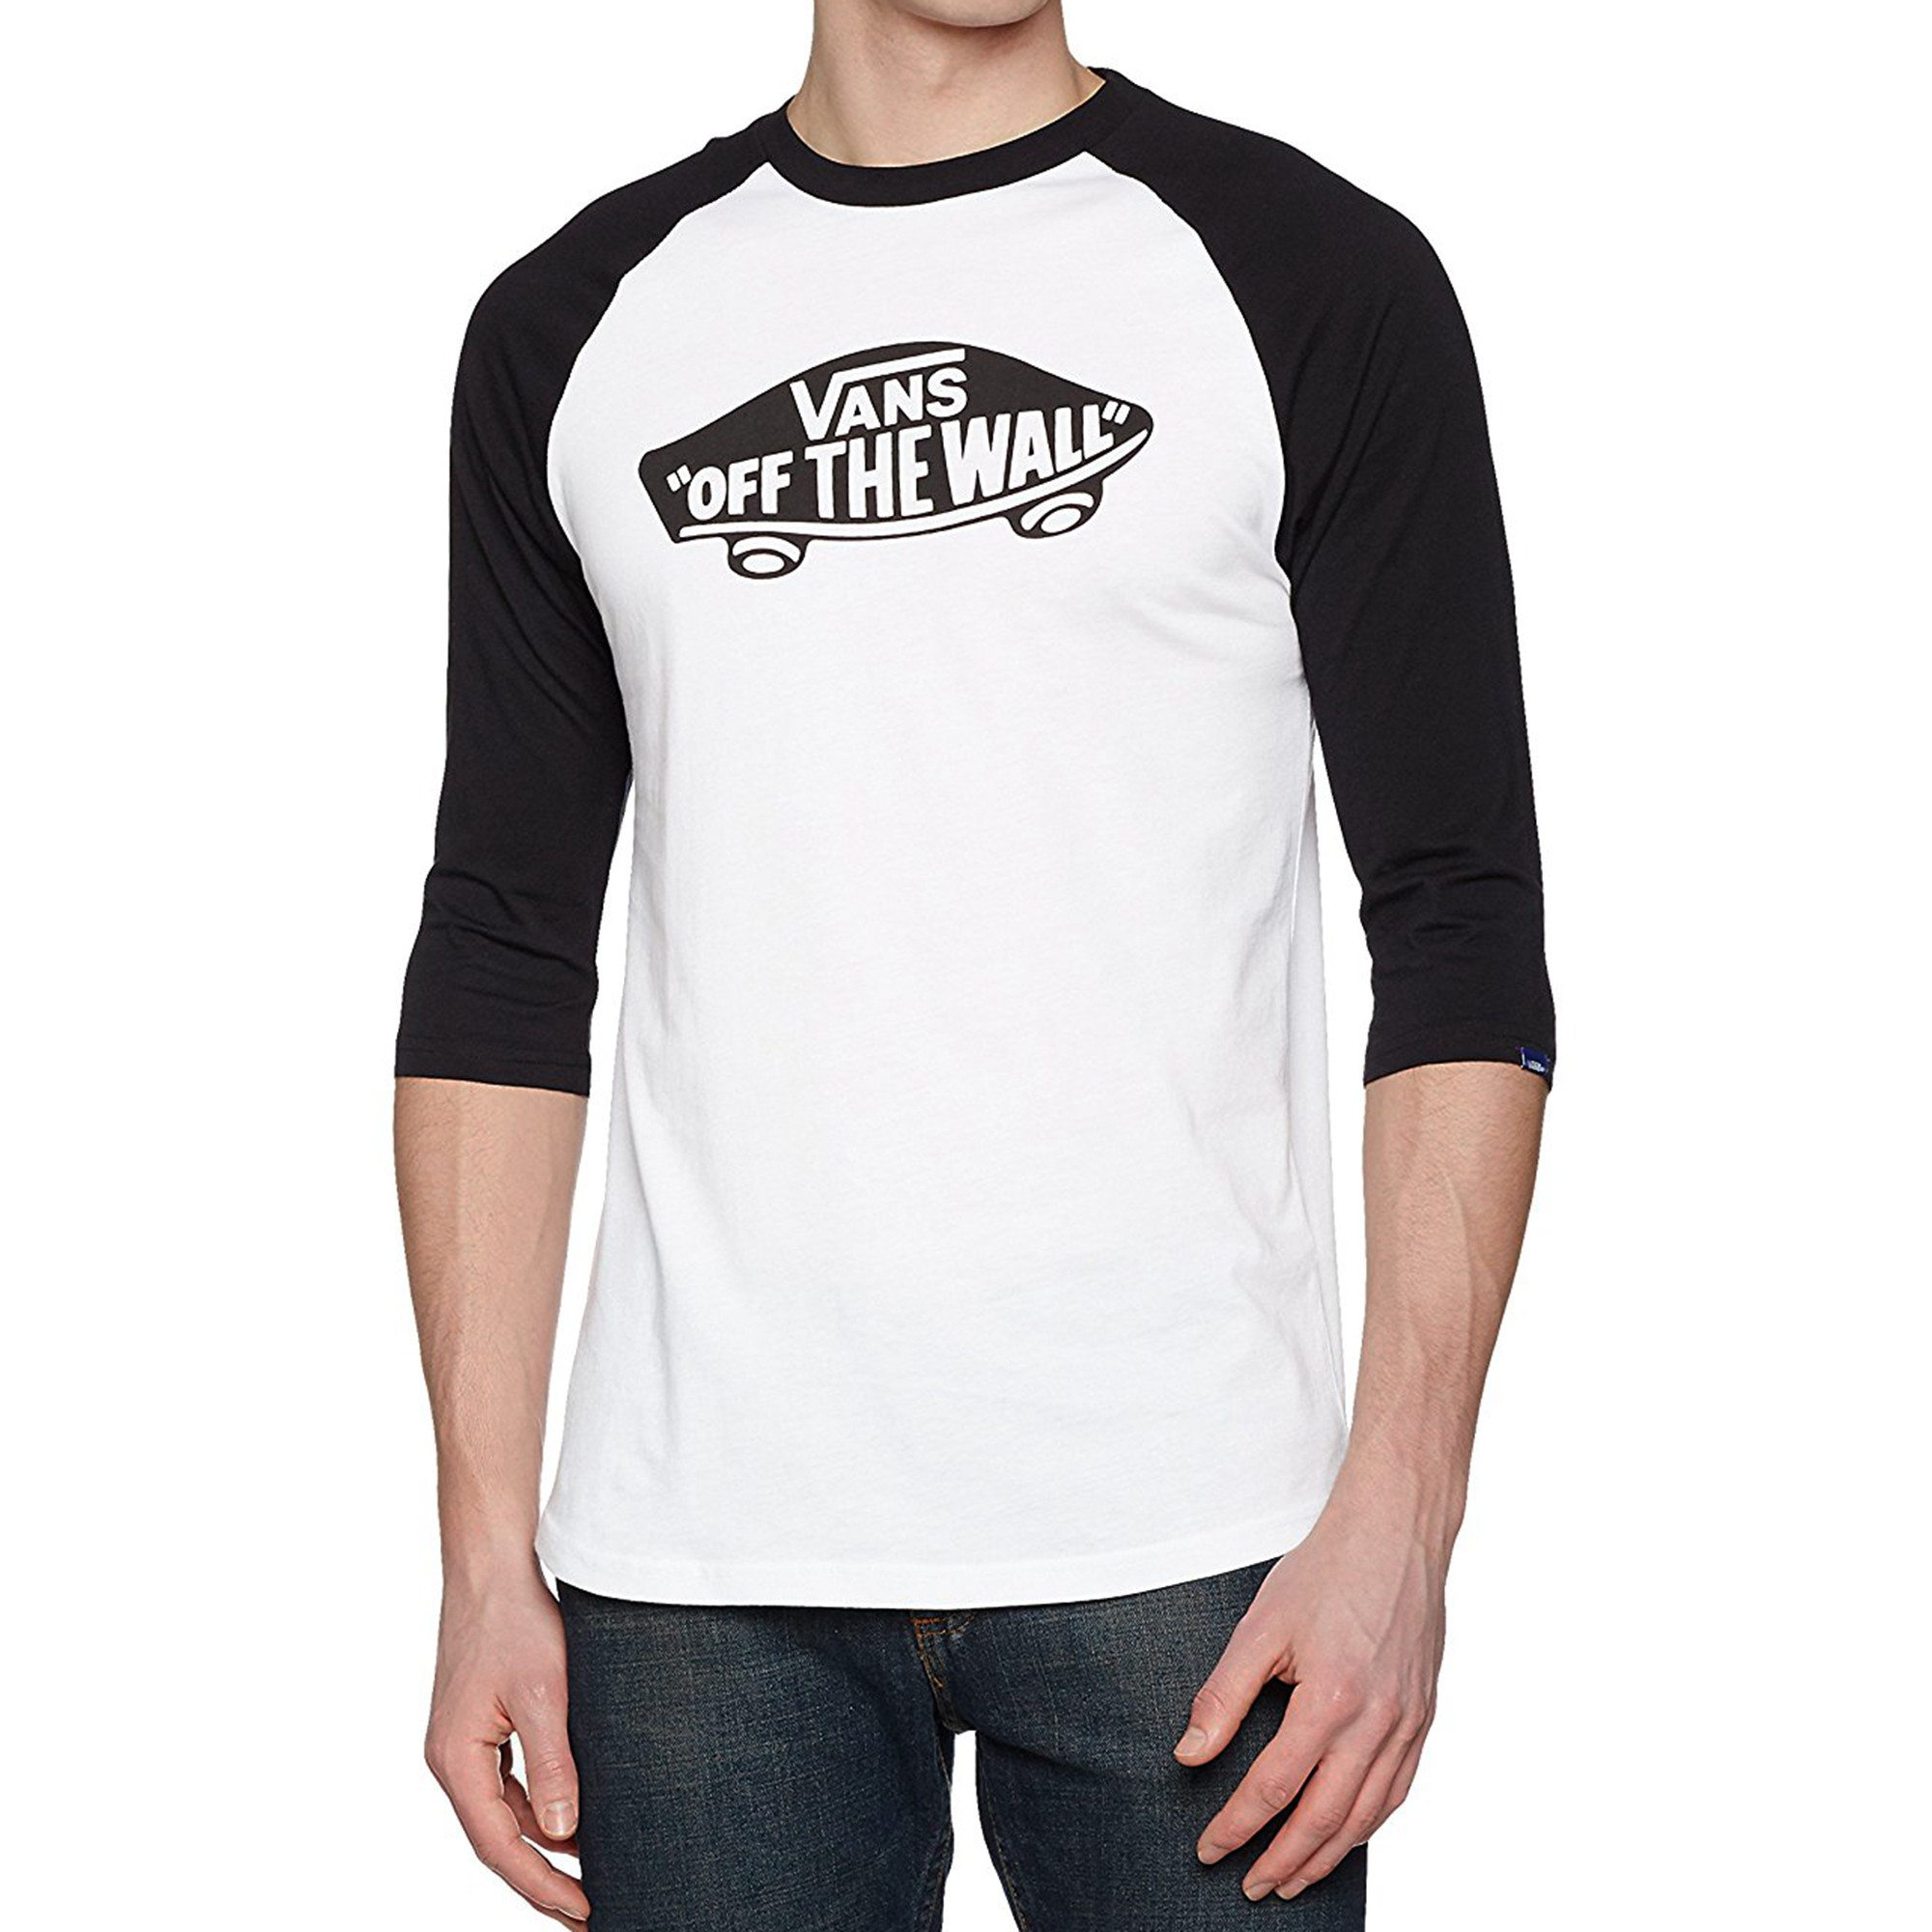 b49d46e8f8 Vans Off The Wall Crew Neck Raglan T-shirt White Black